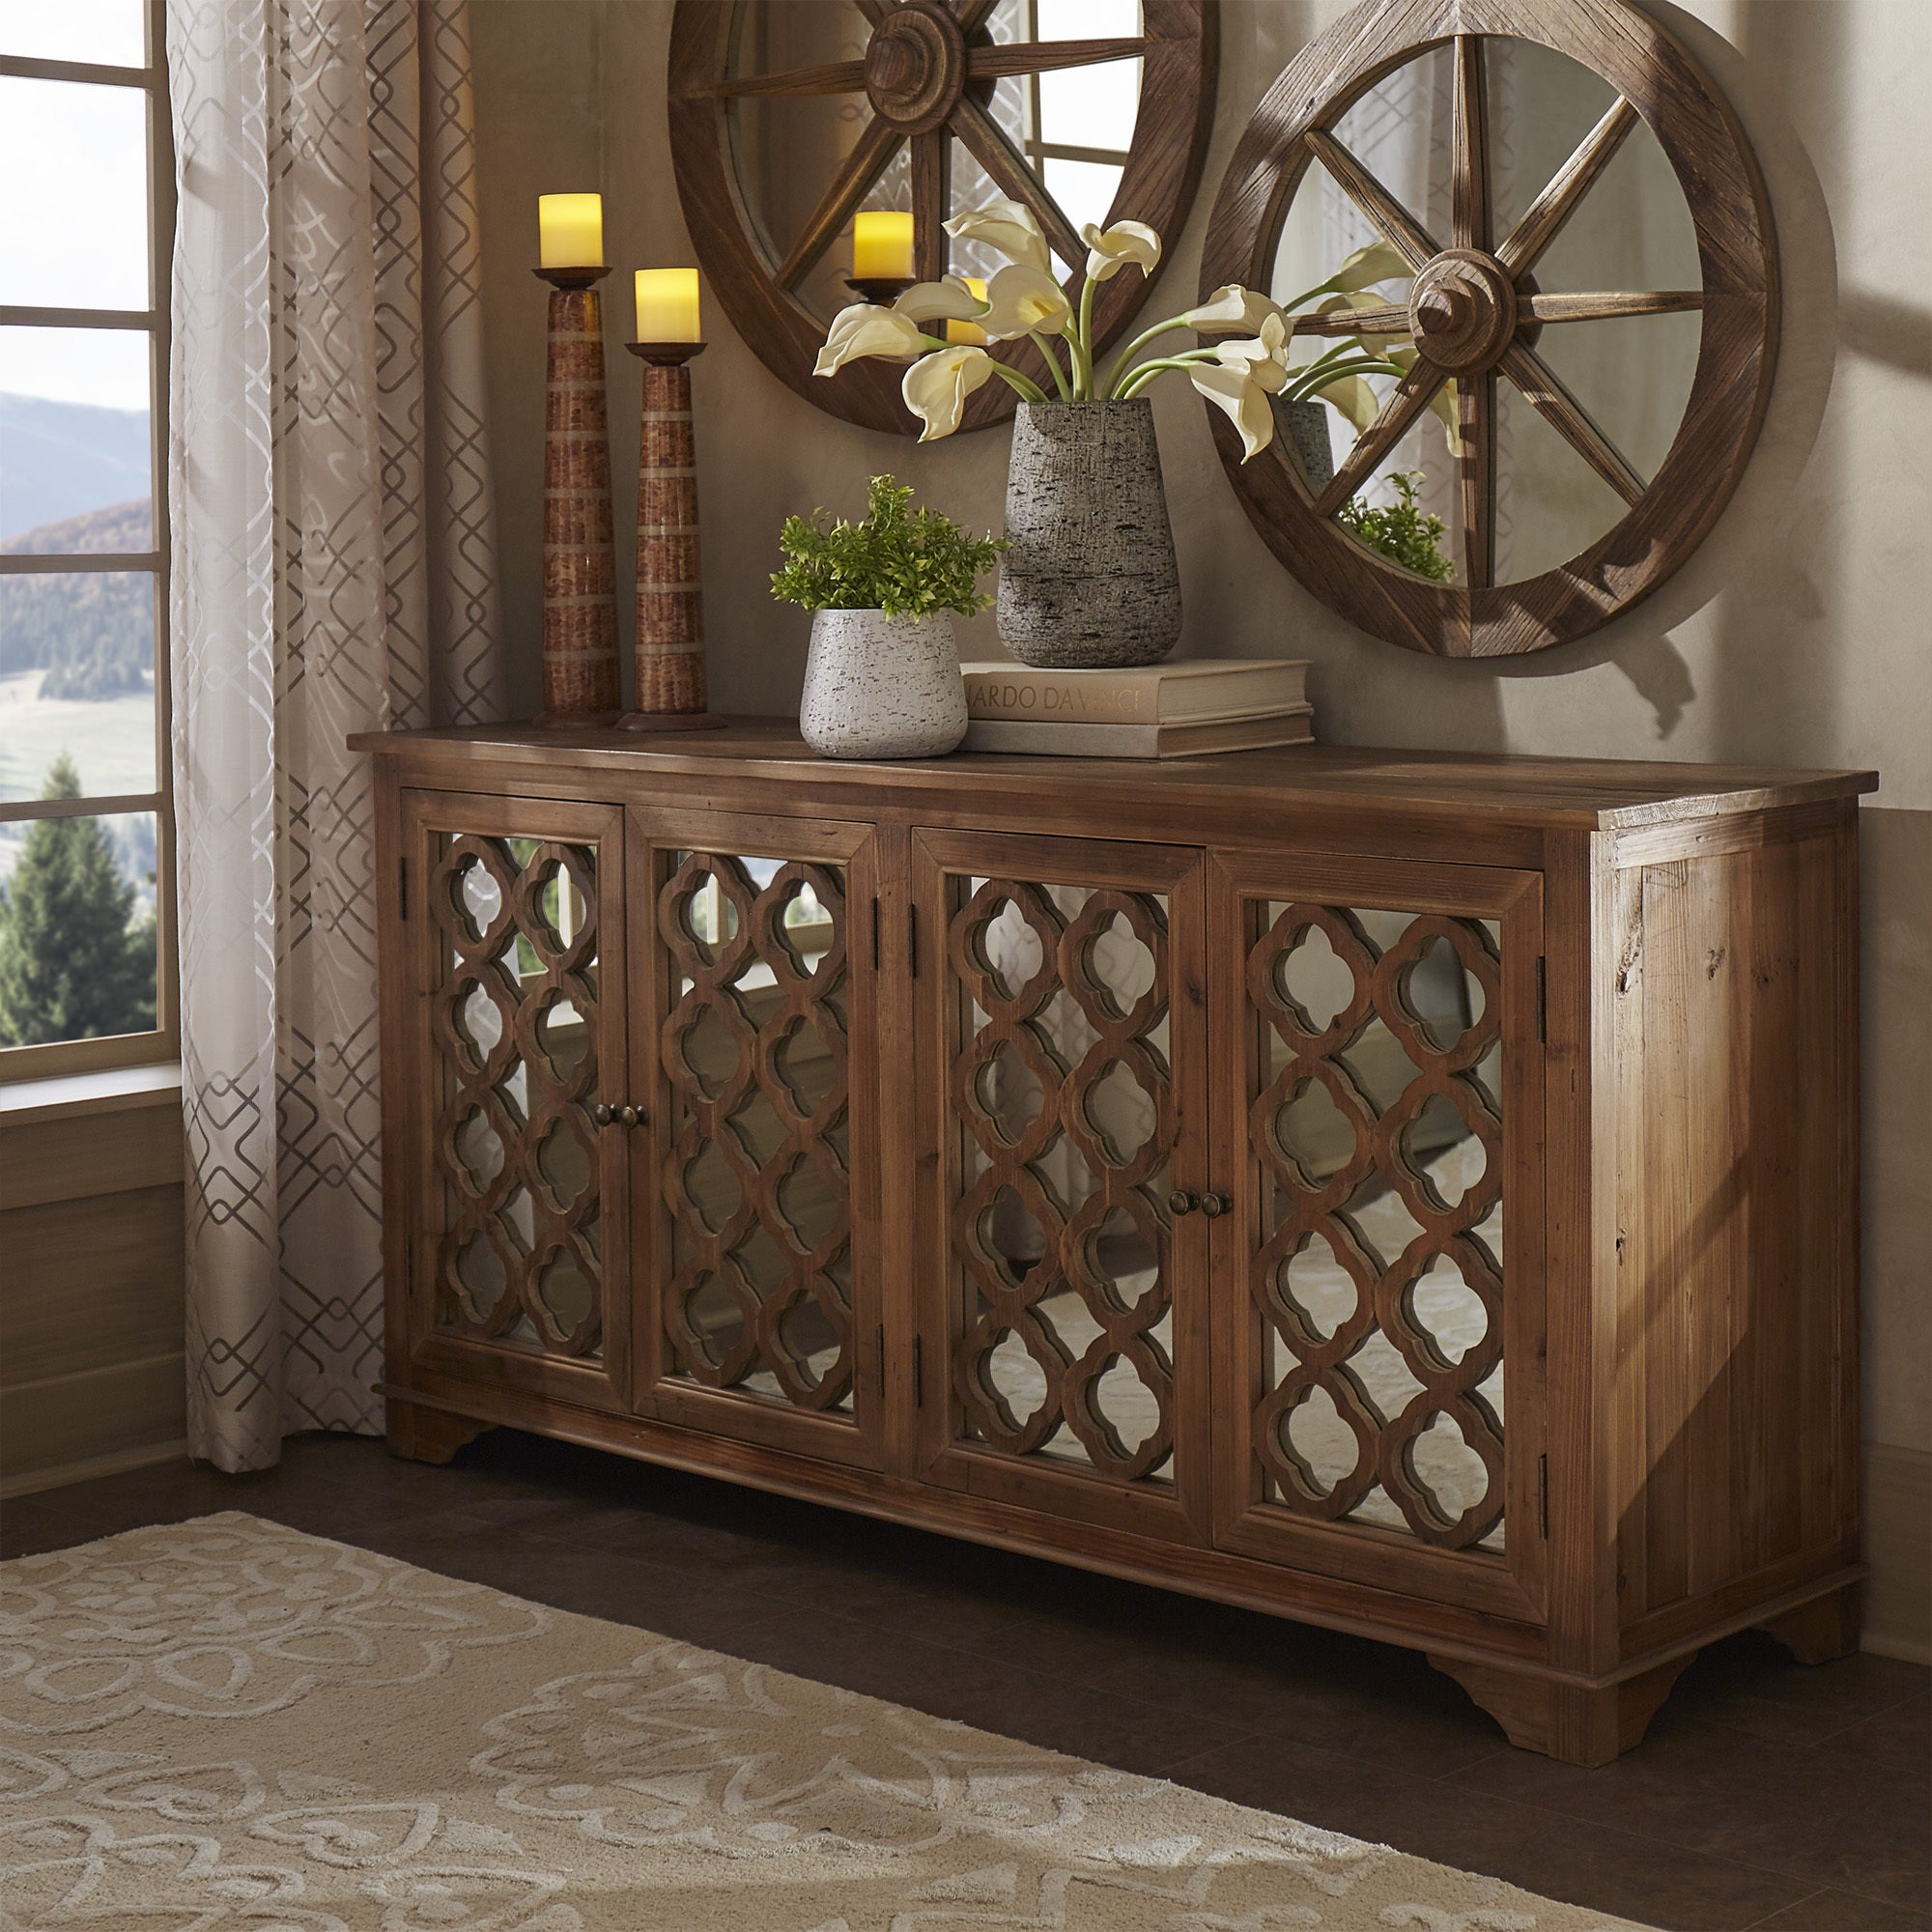 Hamptons Quatrefoil Reclaimed Wood Mirrored Buffet Sidebo...